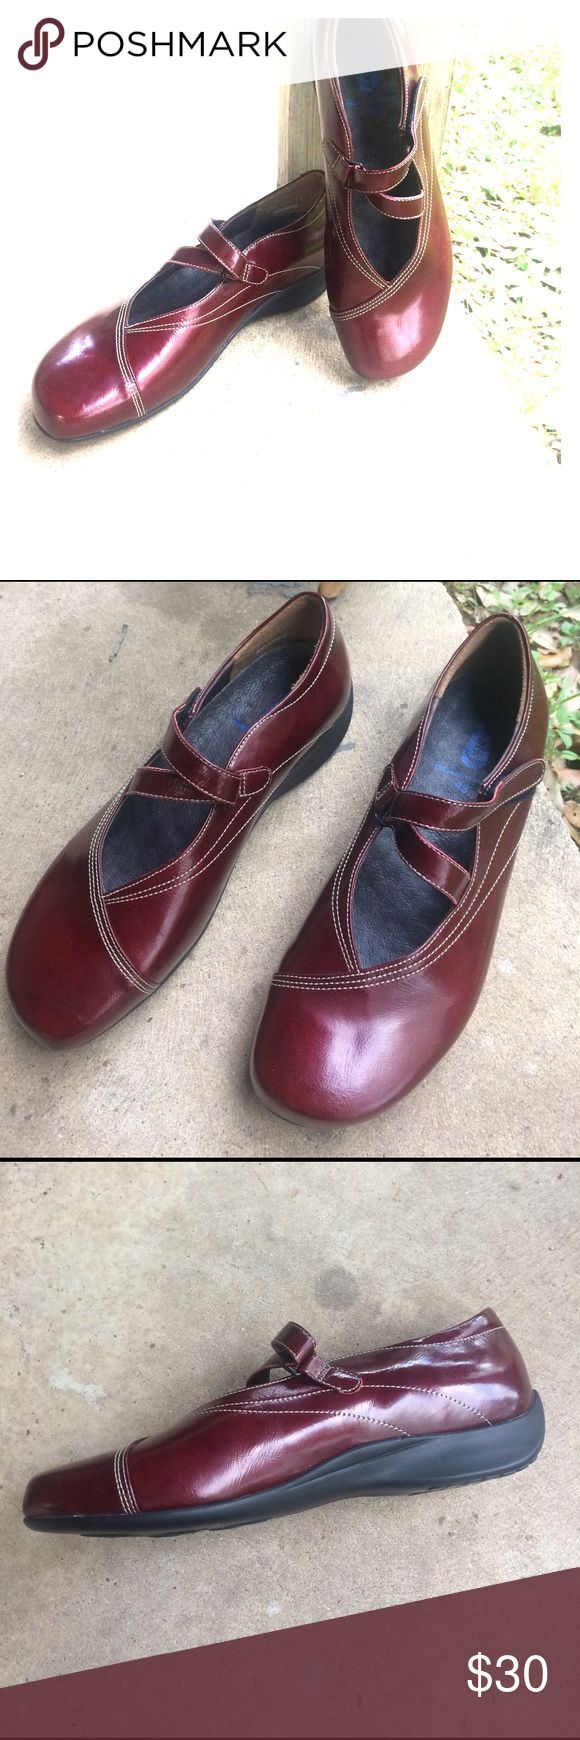 Slightly worn, candy apple red Wolky shoes Barely worn Wolky enclosed shoes with Velcro closure and adjustable straps wolkly Shoes Flats & Loafers